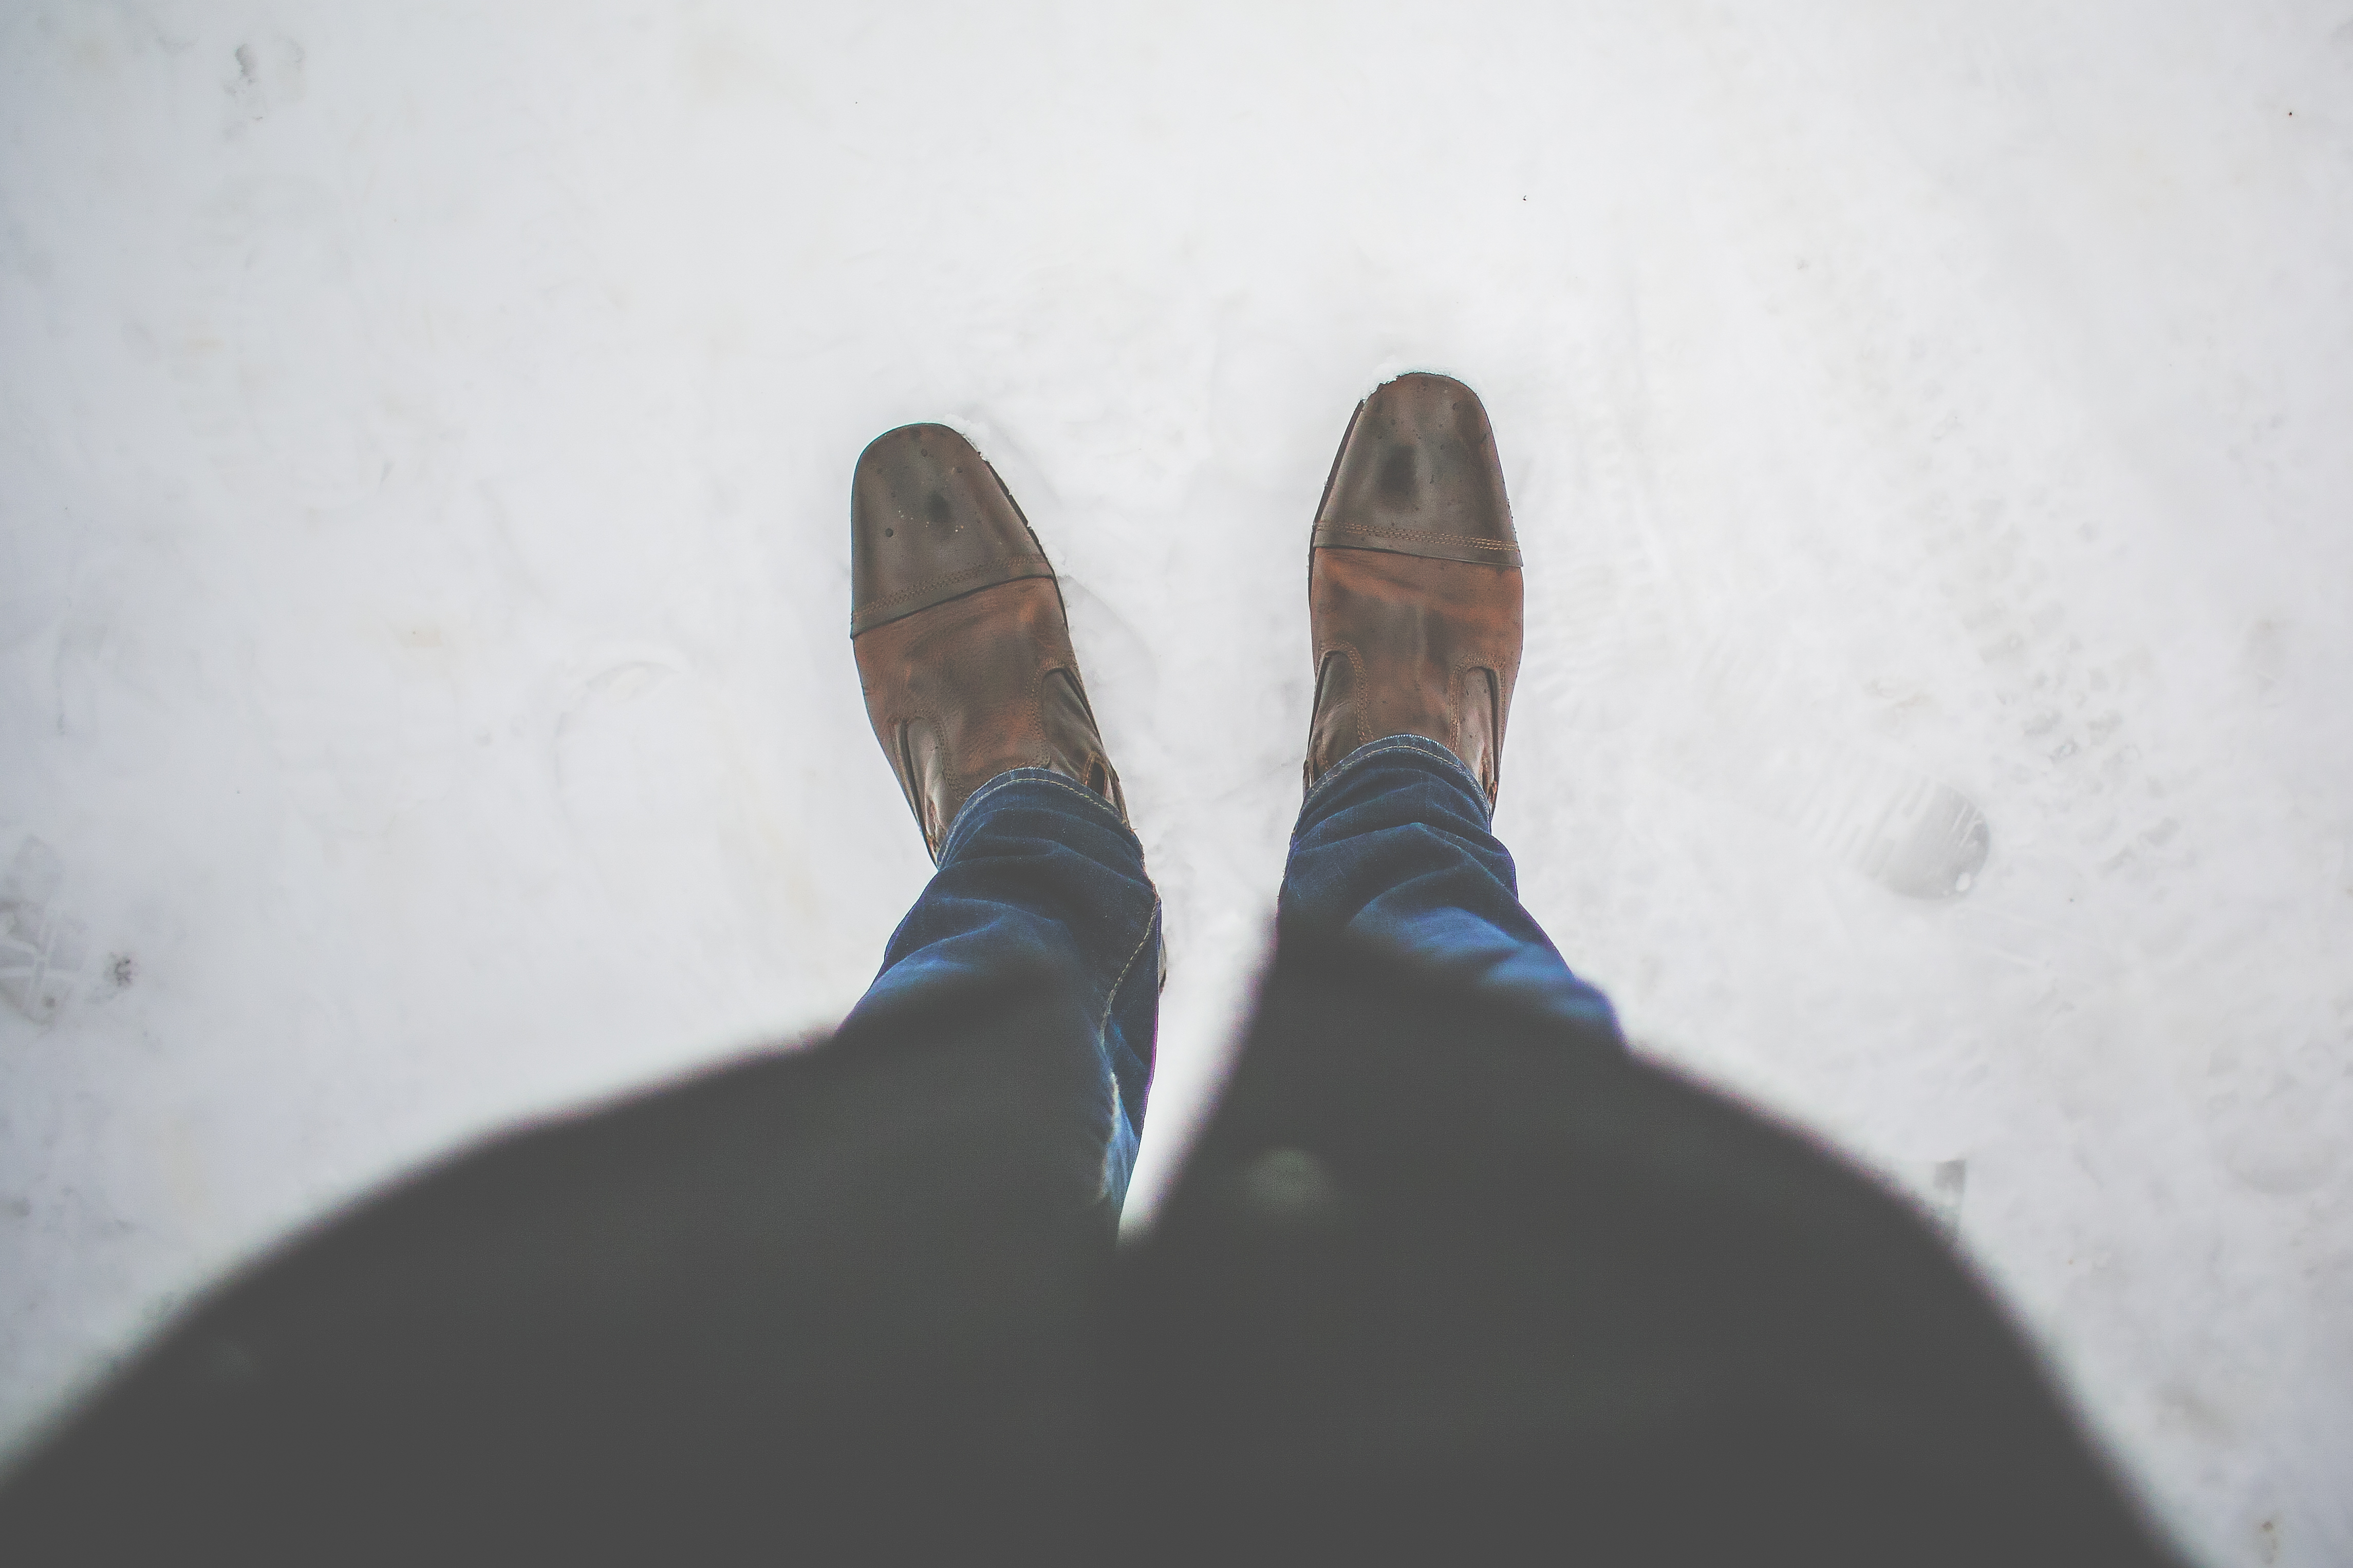 Men Leather Shoes in Snow Free Stock Photo